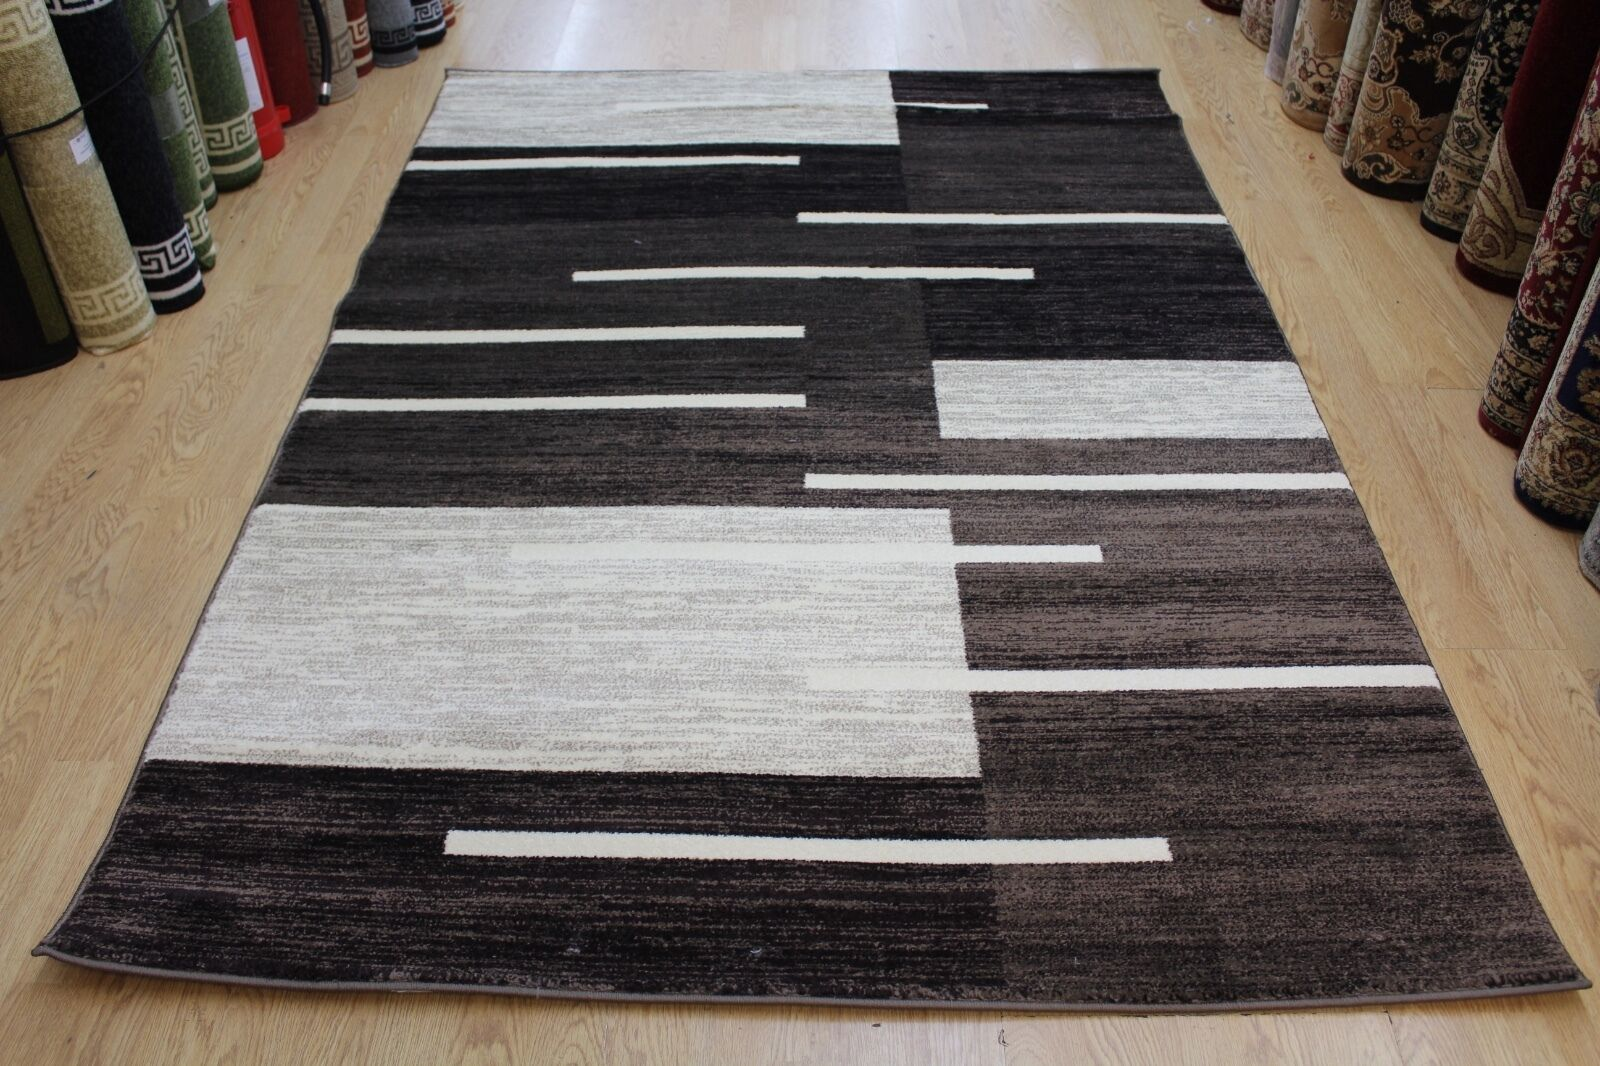 SMALL MEDIUM LARGE  MODERN MODERN MODERN CHEAP BUDGET SOFT MULTI CARPET AREA RUGS NOW  20% OFF 634827